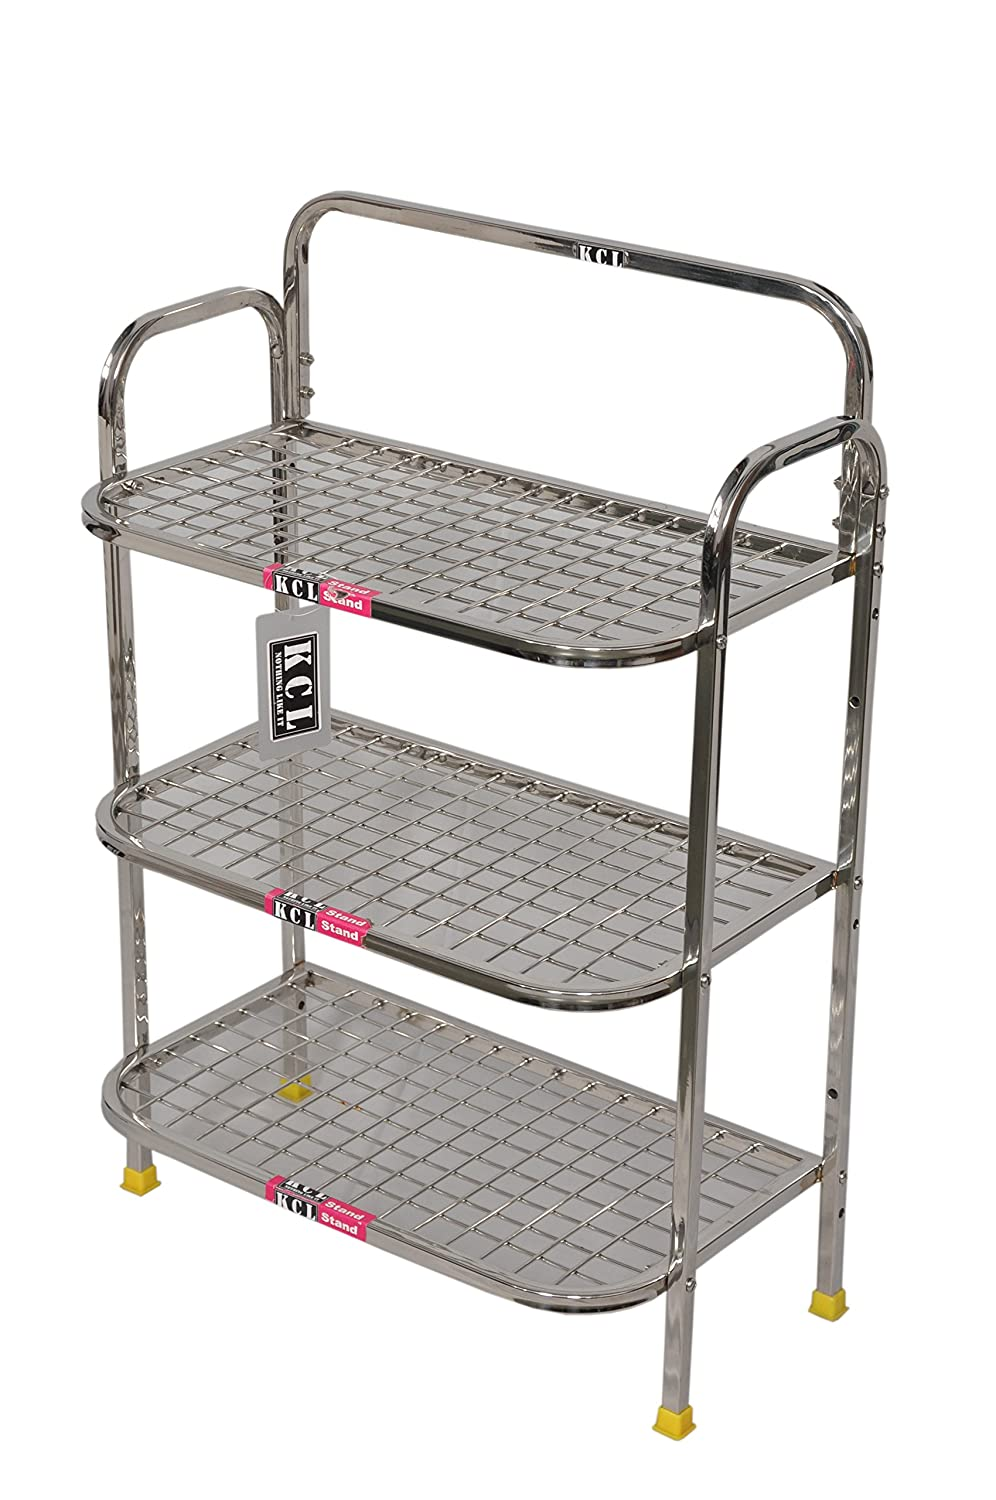 Buy kcl multi r stainless steel kitchen rack online at low prices in india amazon in